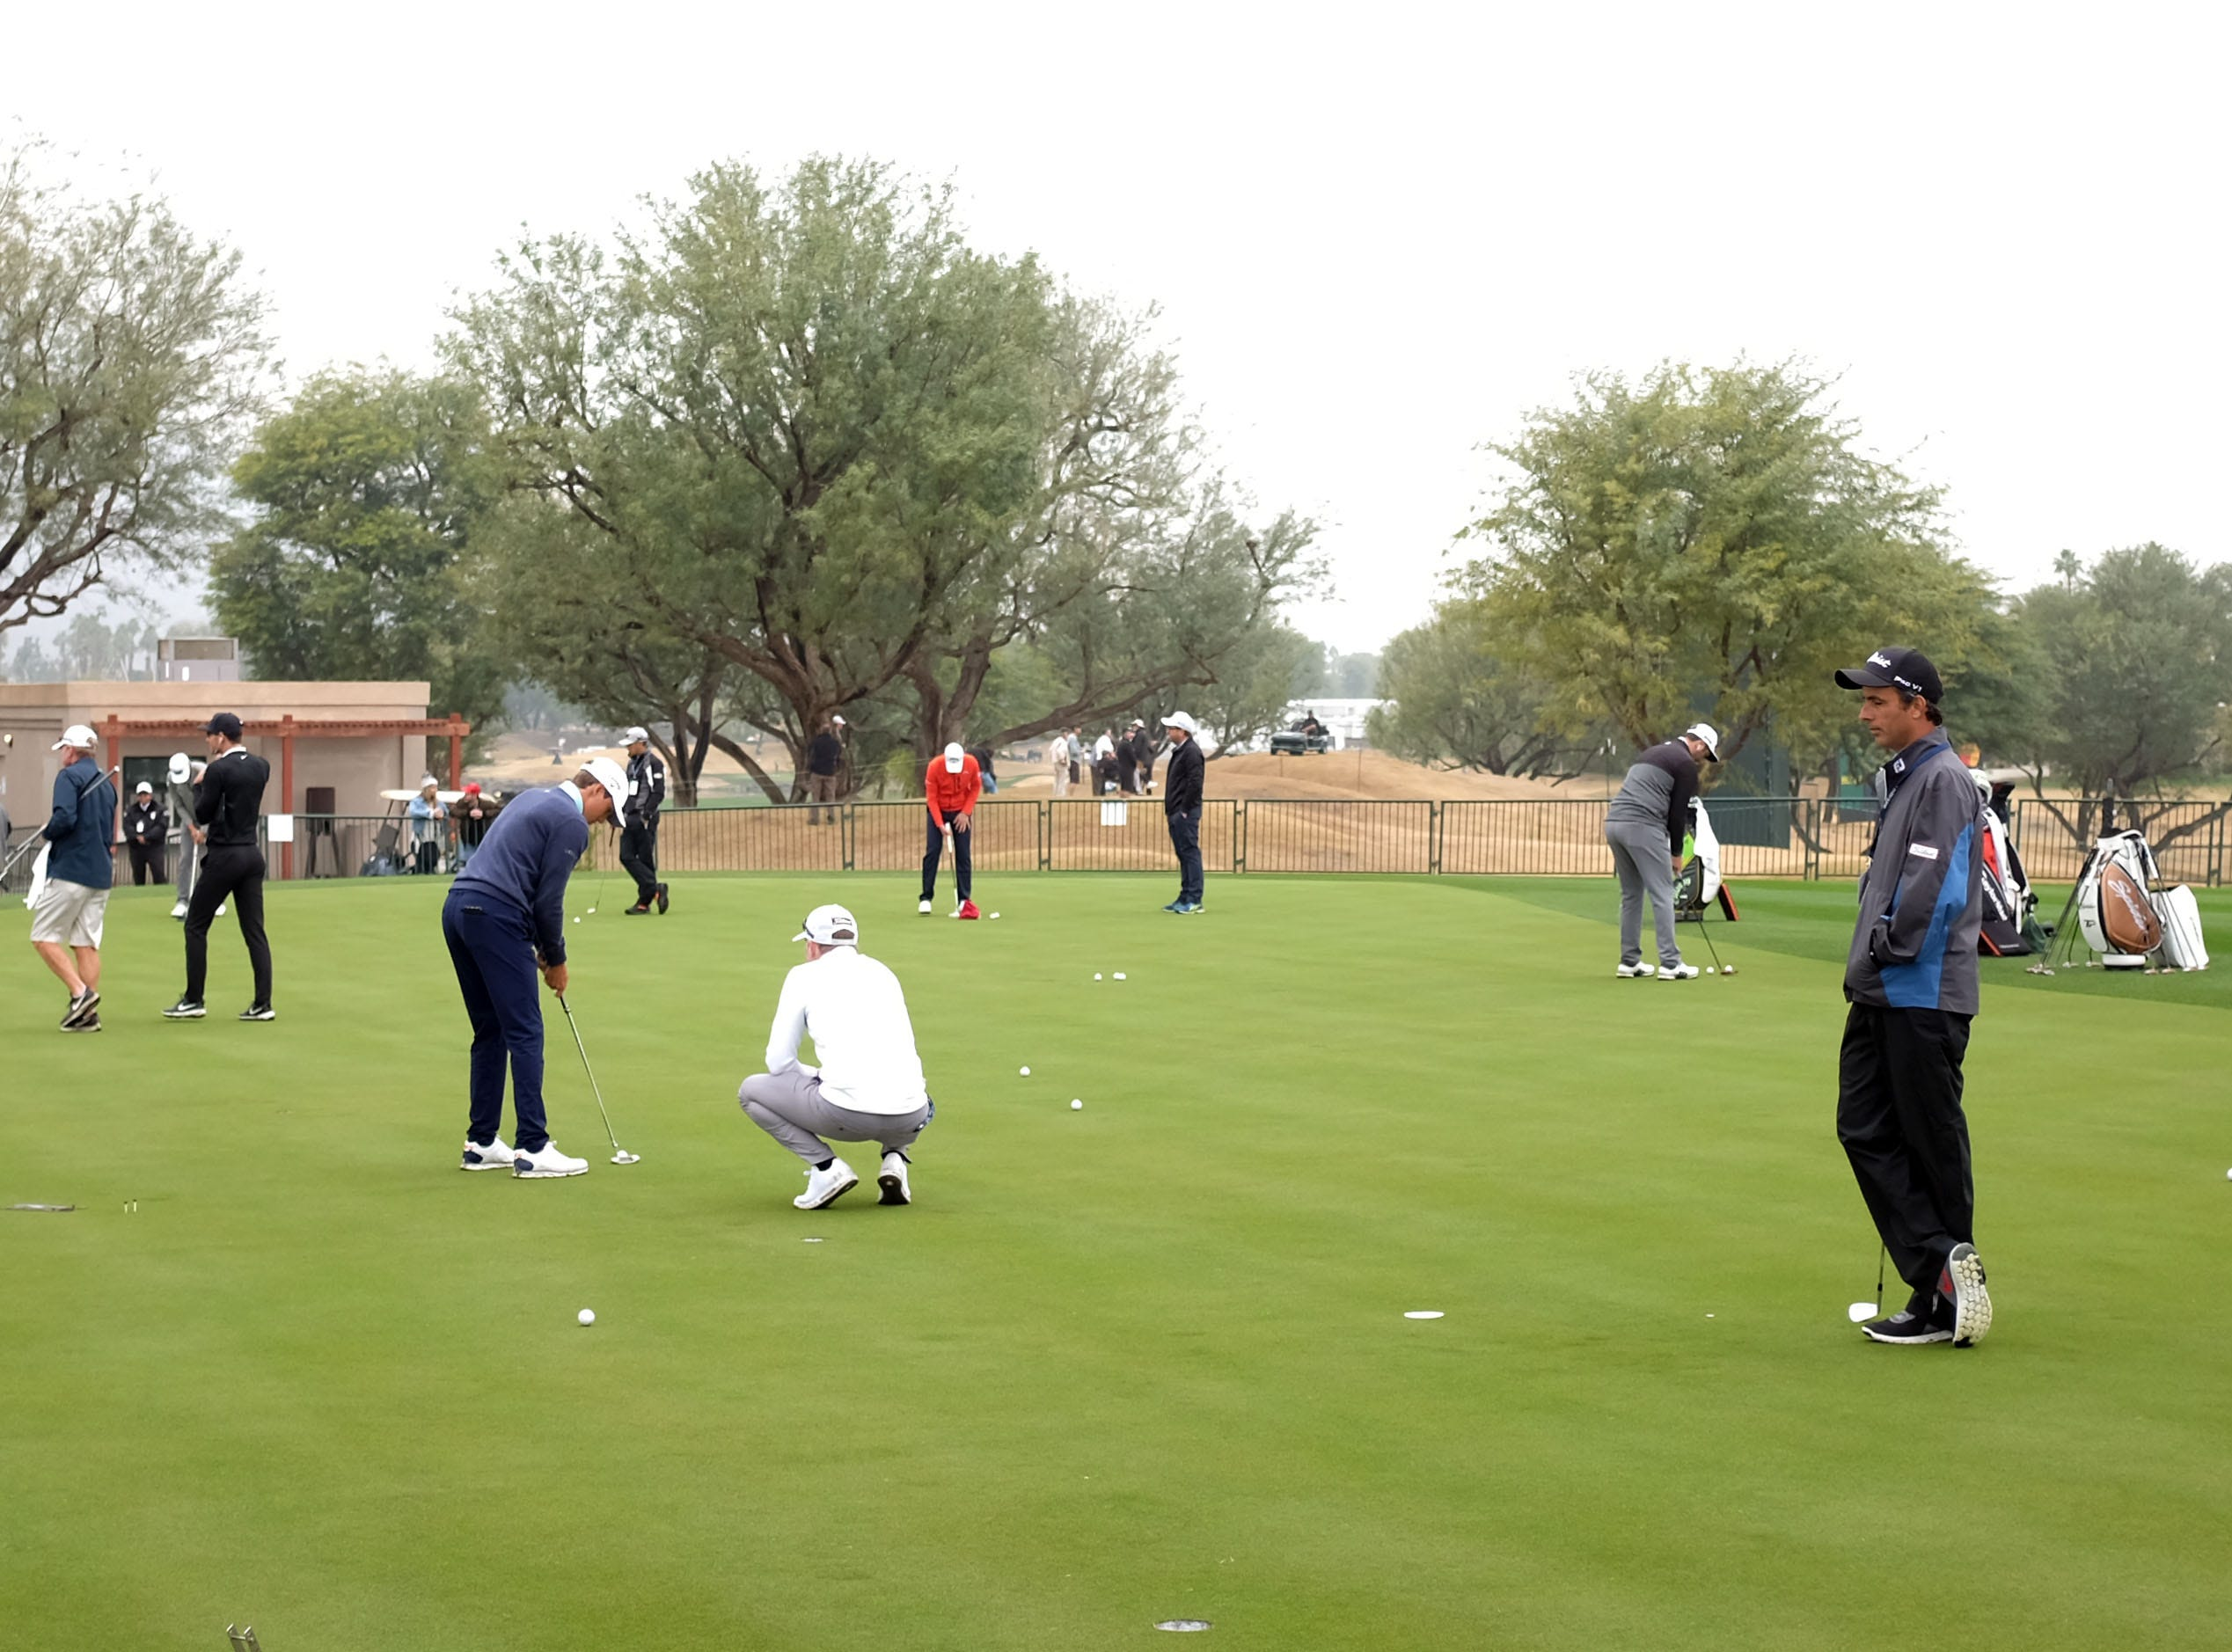 Pros practice putting for the Desert Classic on Wednesday, January 16, 2019 in La Quinta.